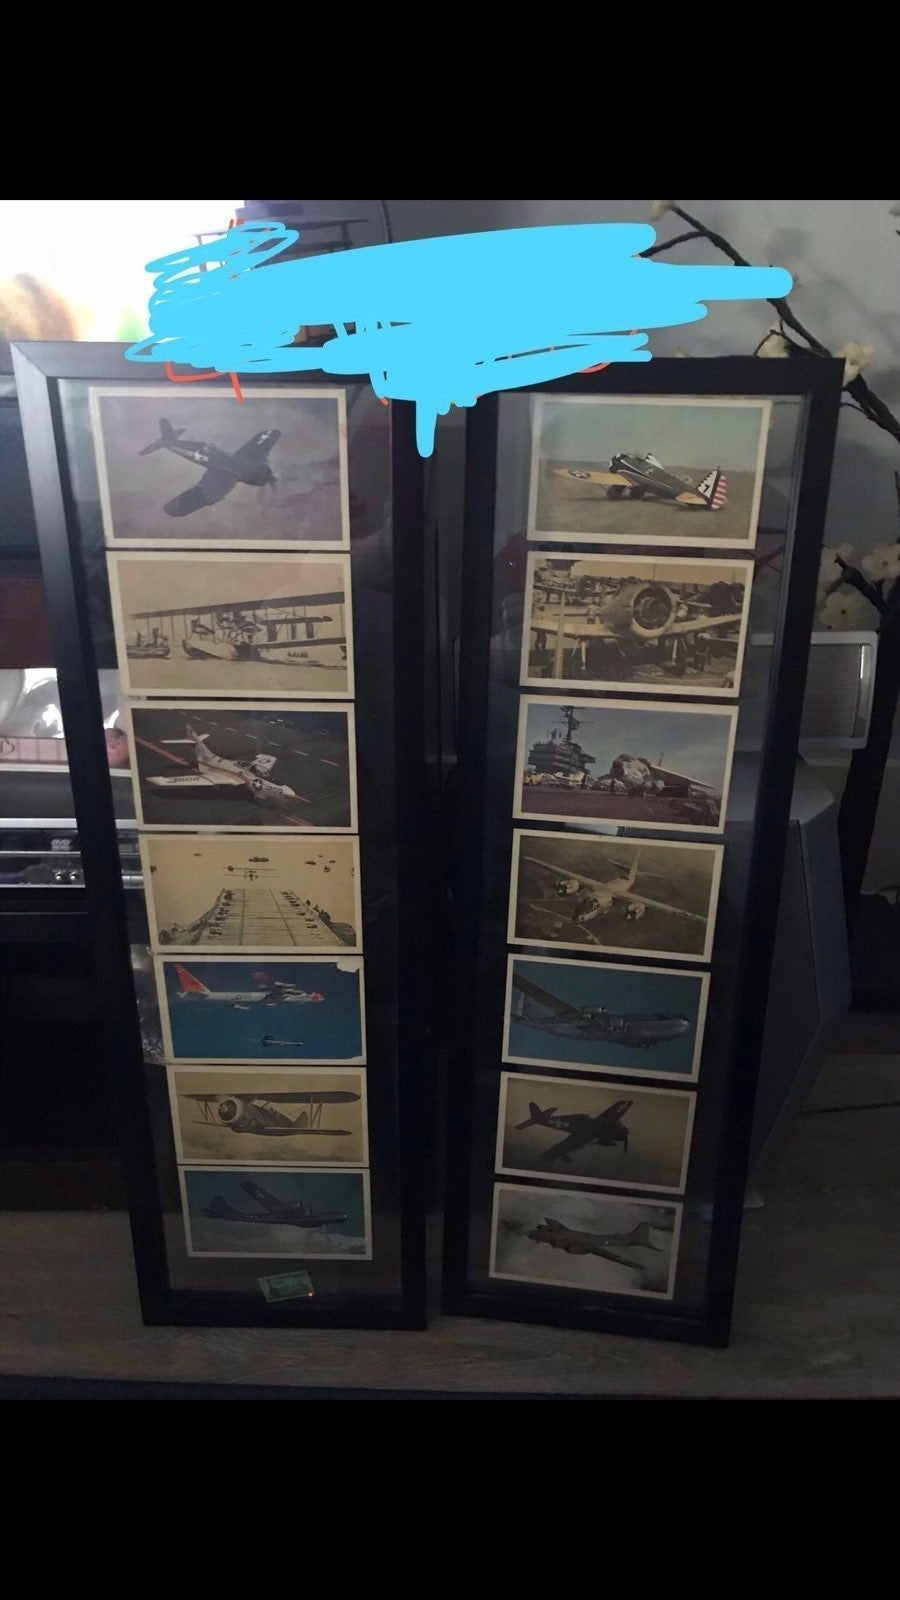 VERY OLD STAMP AND PLANE CARDS